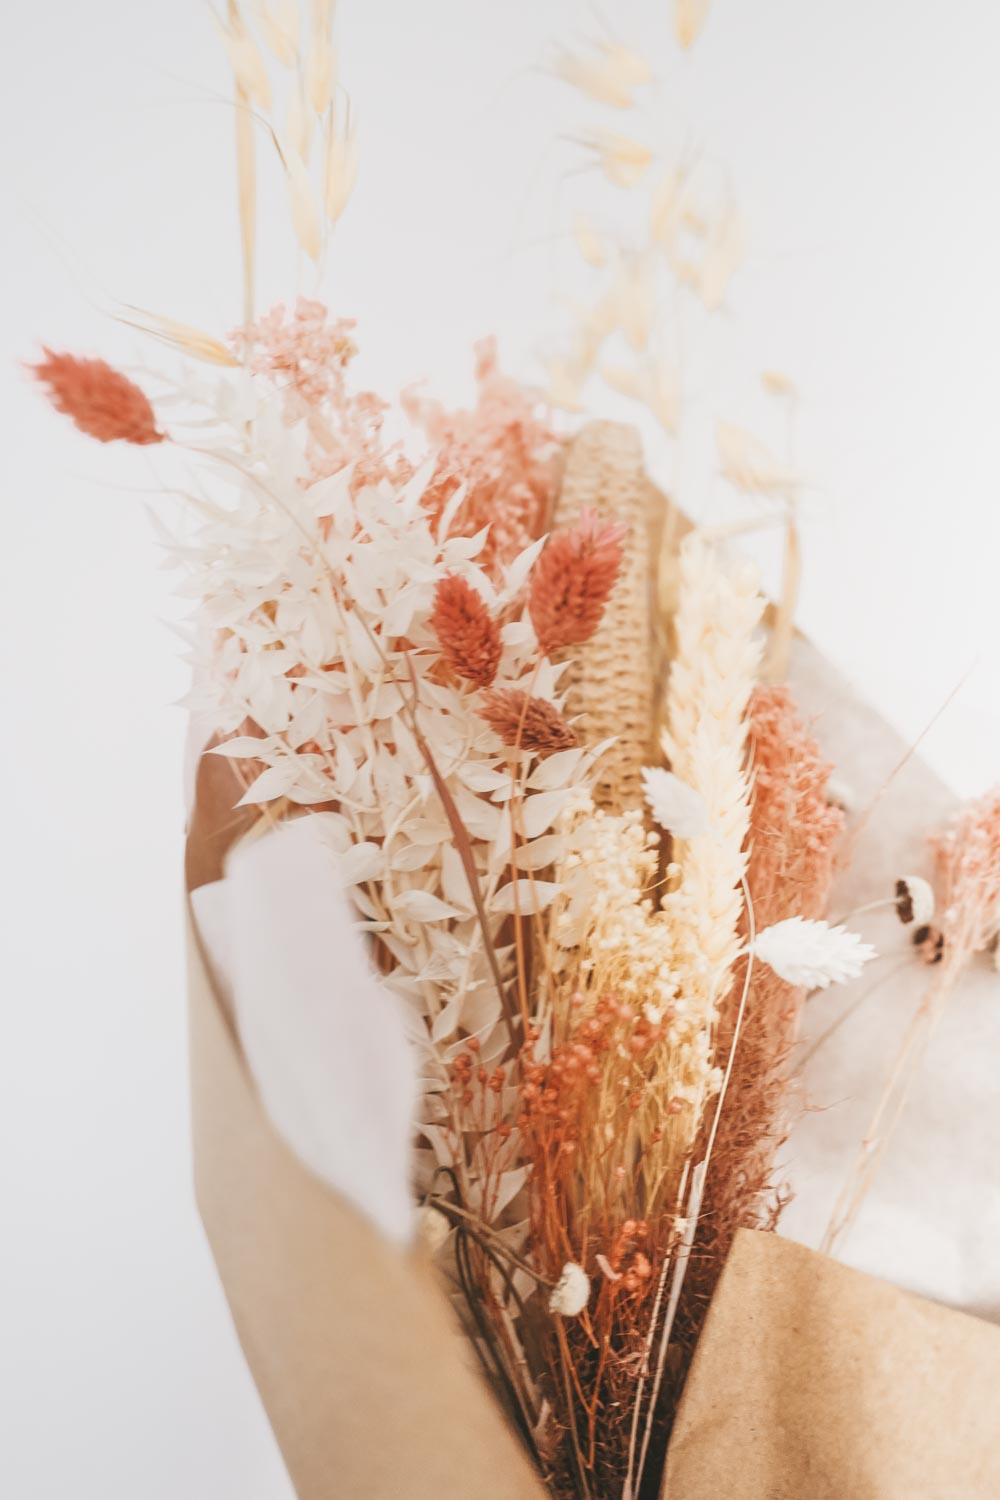 Copy of Copy of Handmade Dried Flower Bundle N13.